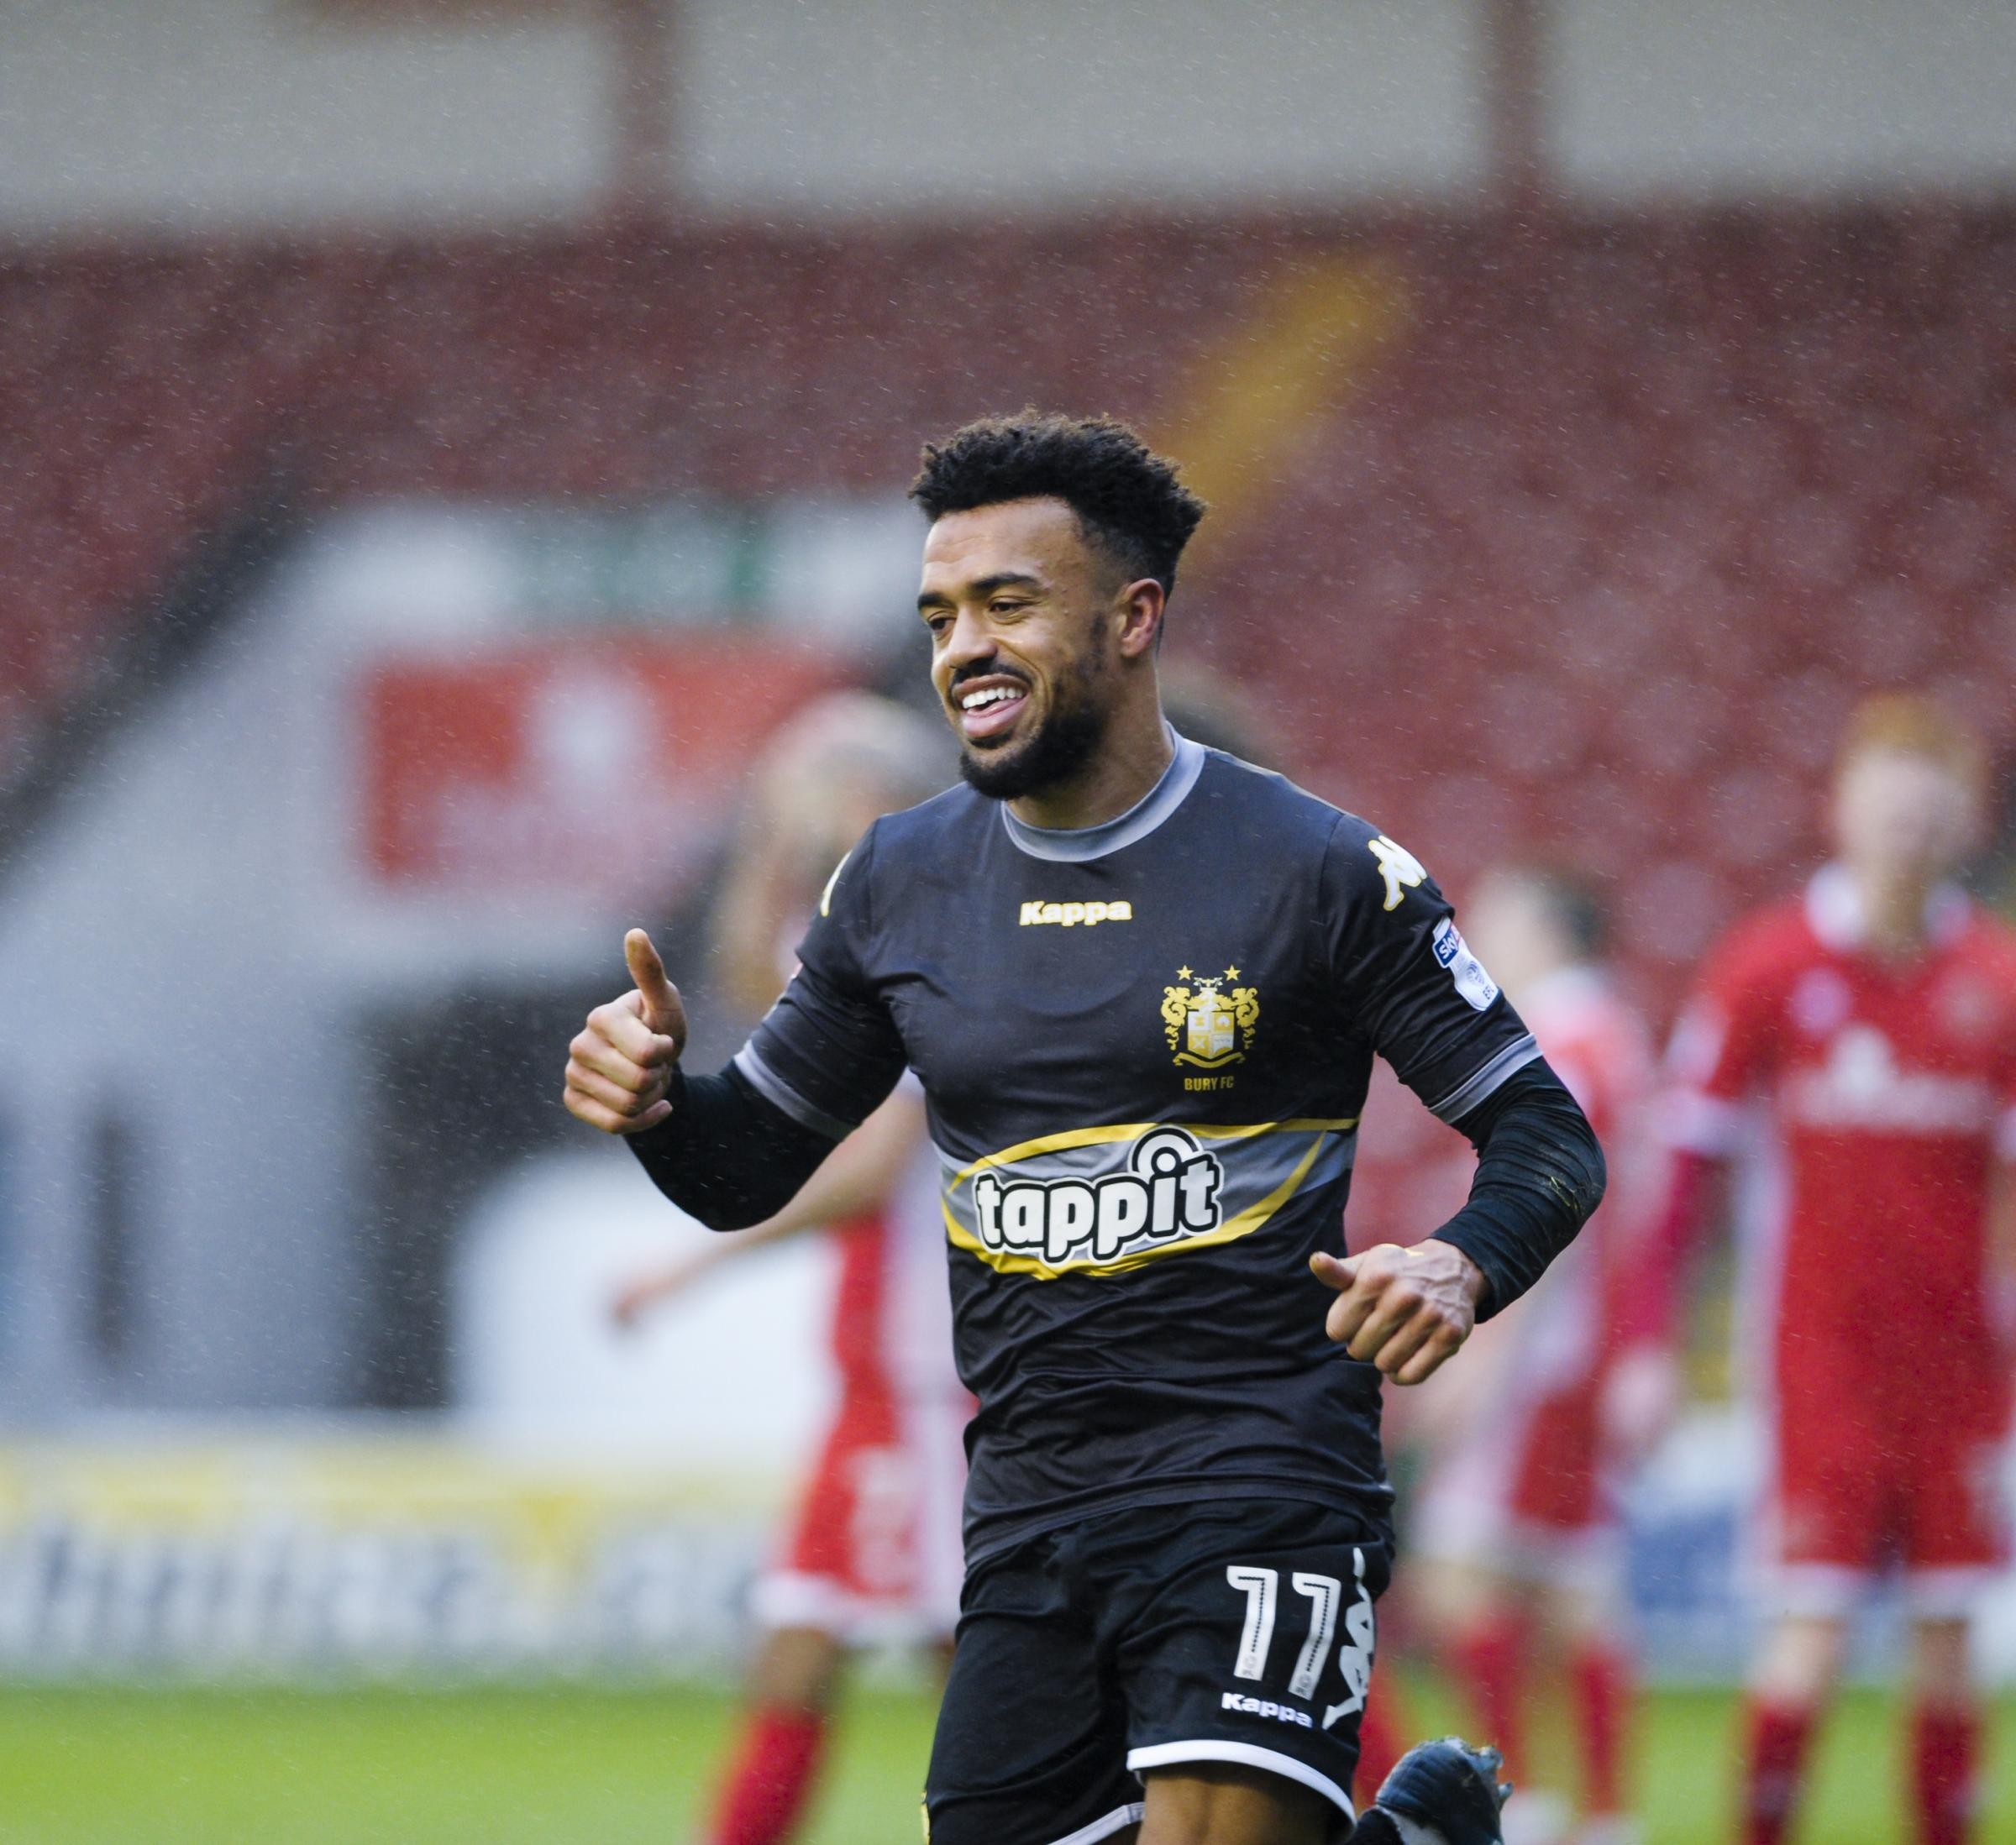 The smile is back on Nicky Ajose's face after a difficult start to his third spell at hometown club Bury